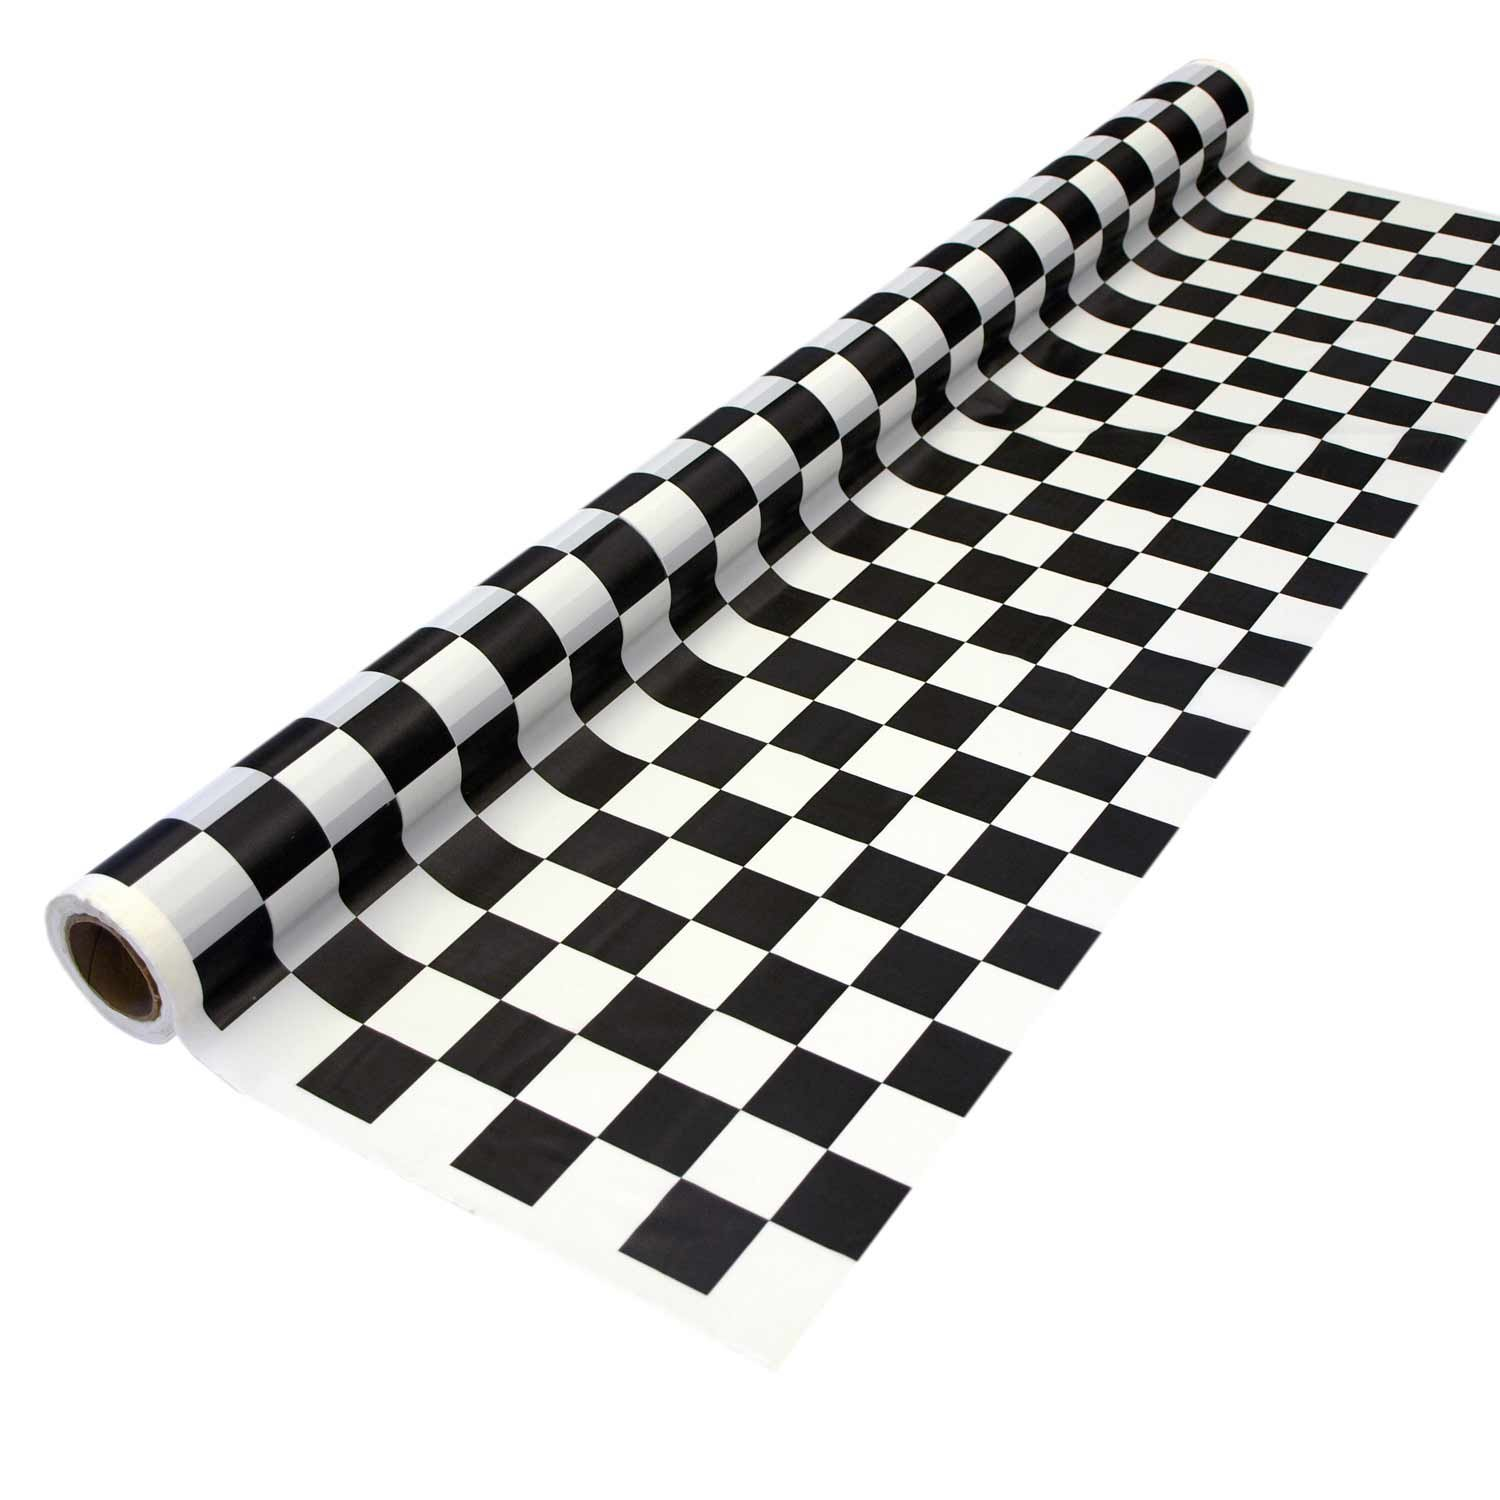 Party Essentials Heavy Duty Printed Plastic Banquet Table Roll Available in 27 Colors, 40'' x 150', Black and White Checks by Party Essentials